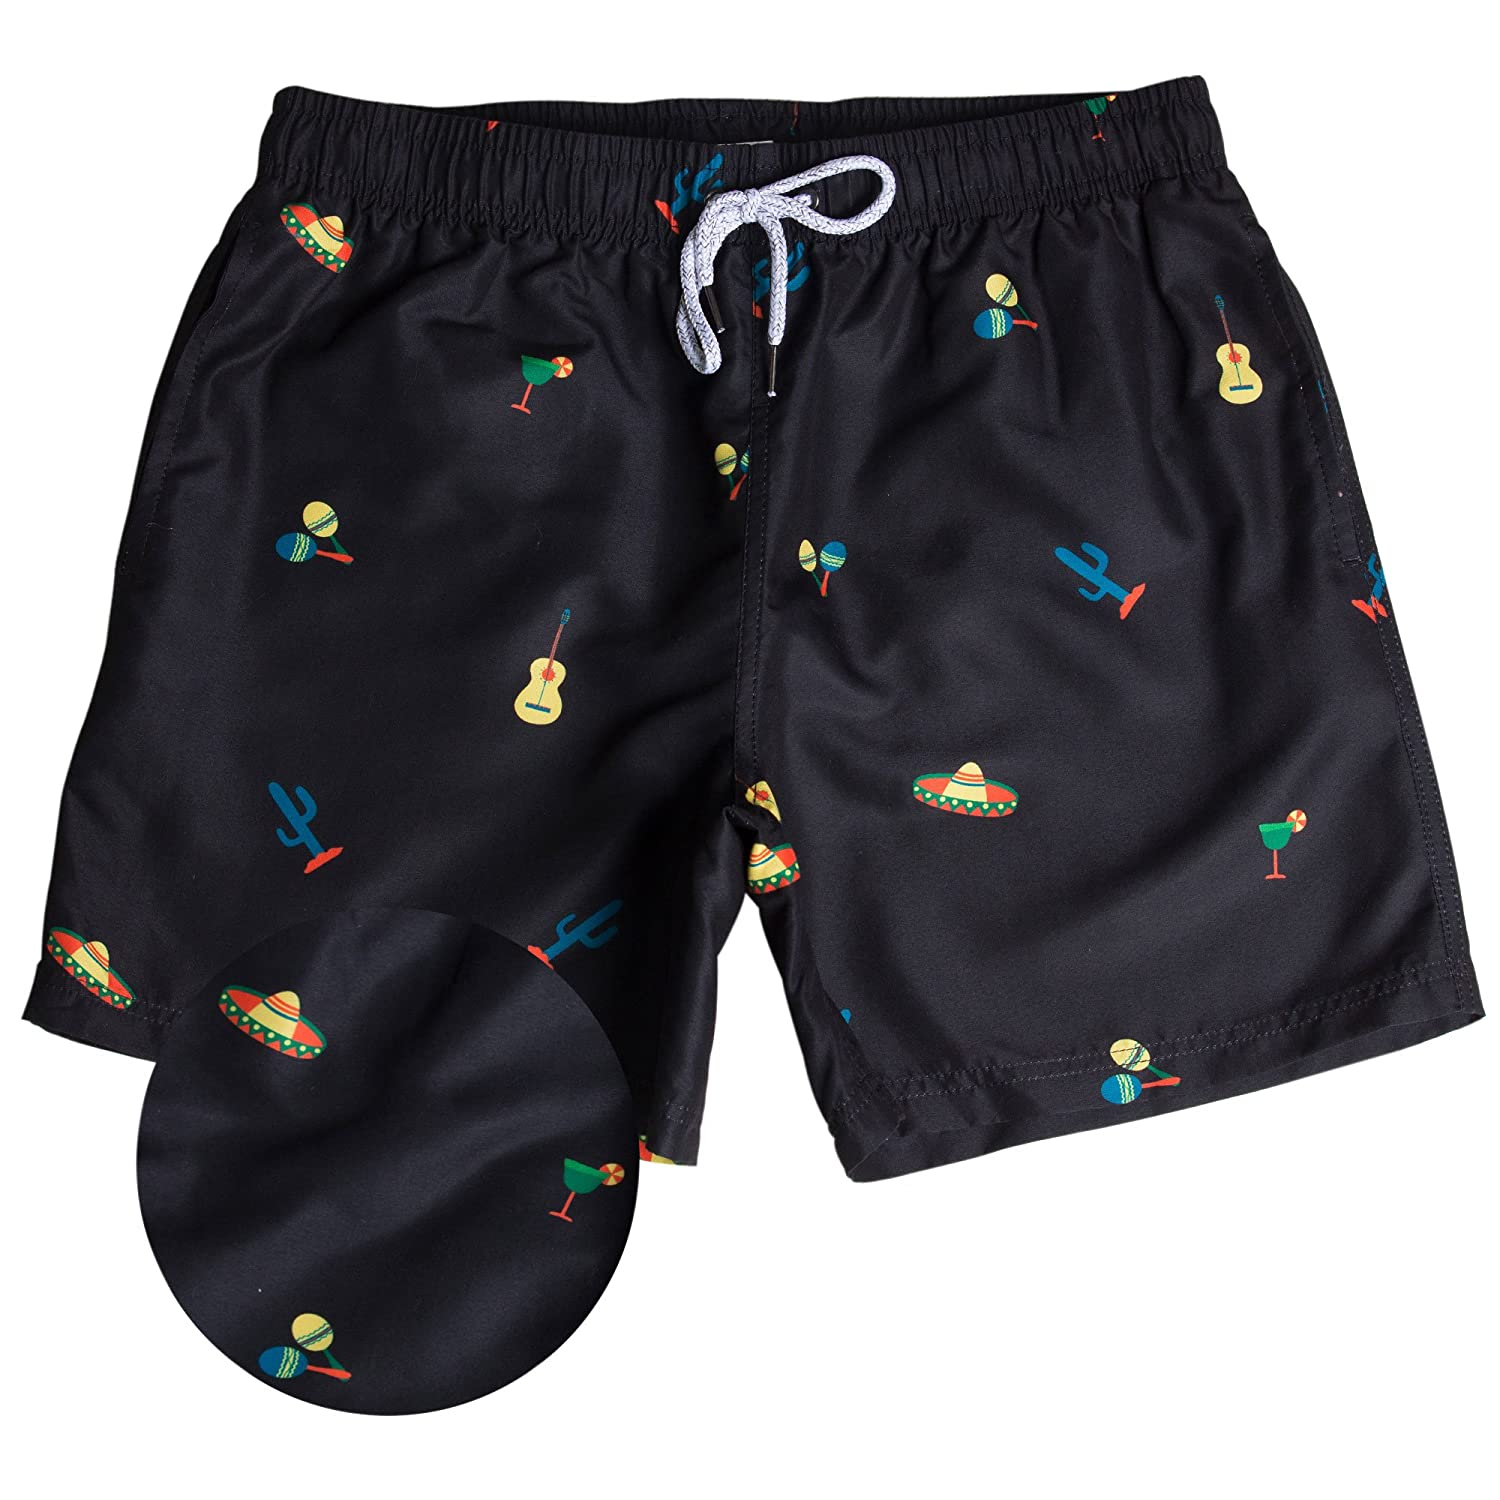 9f2223965d FABRIC - Our swim trunks are made out of 100% Polyester quick dry material.  Each short is printed with a unique fun print and inner mesh liner.